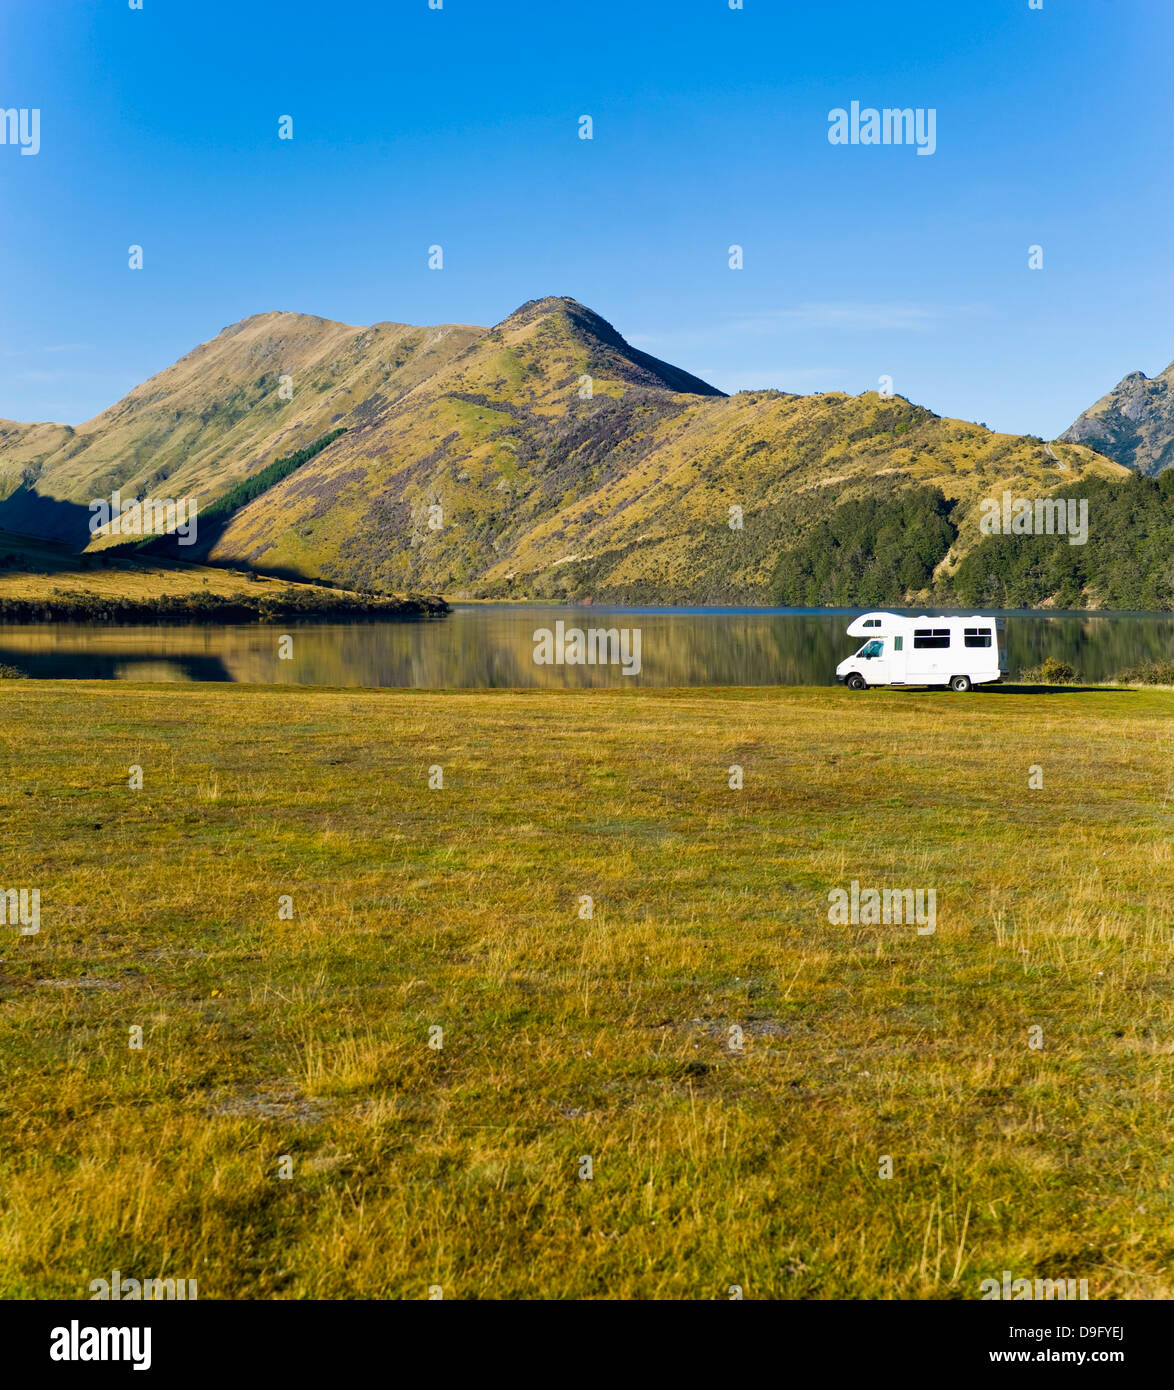 Caravan at Lake Moke Department of Conservation campsite, Queenstown, Otago, South Island, New Zealand - Stock Image